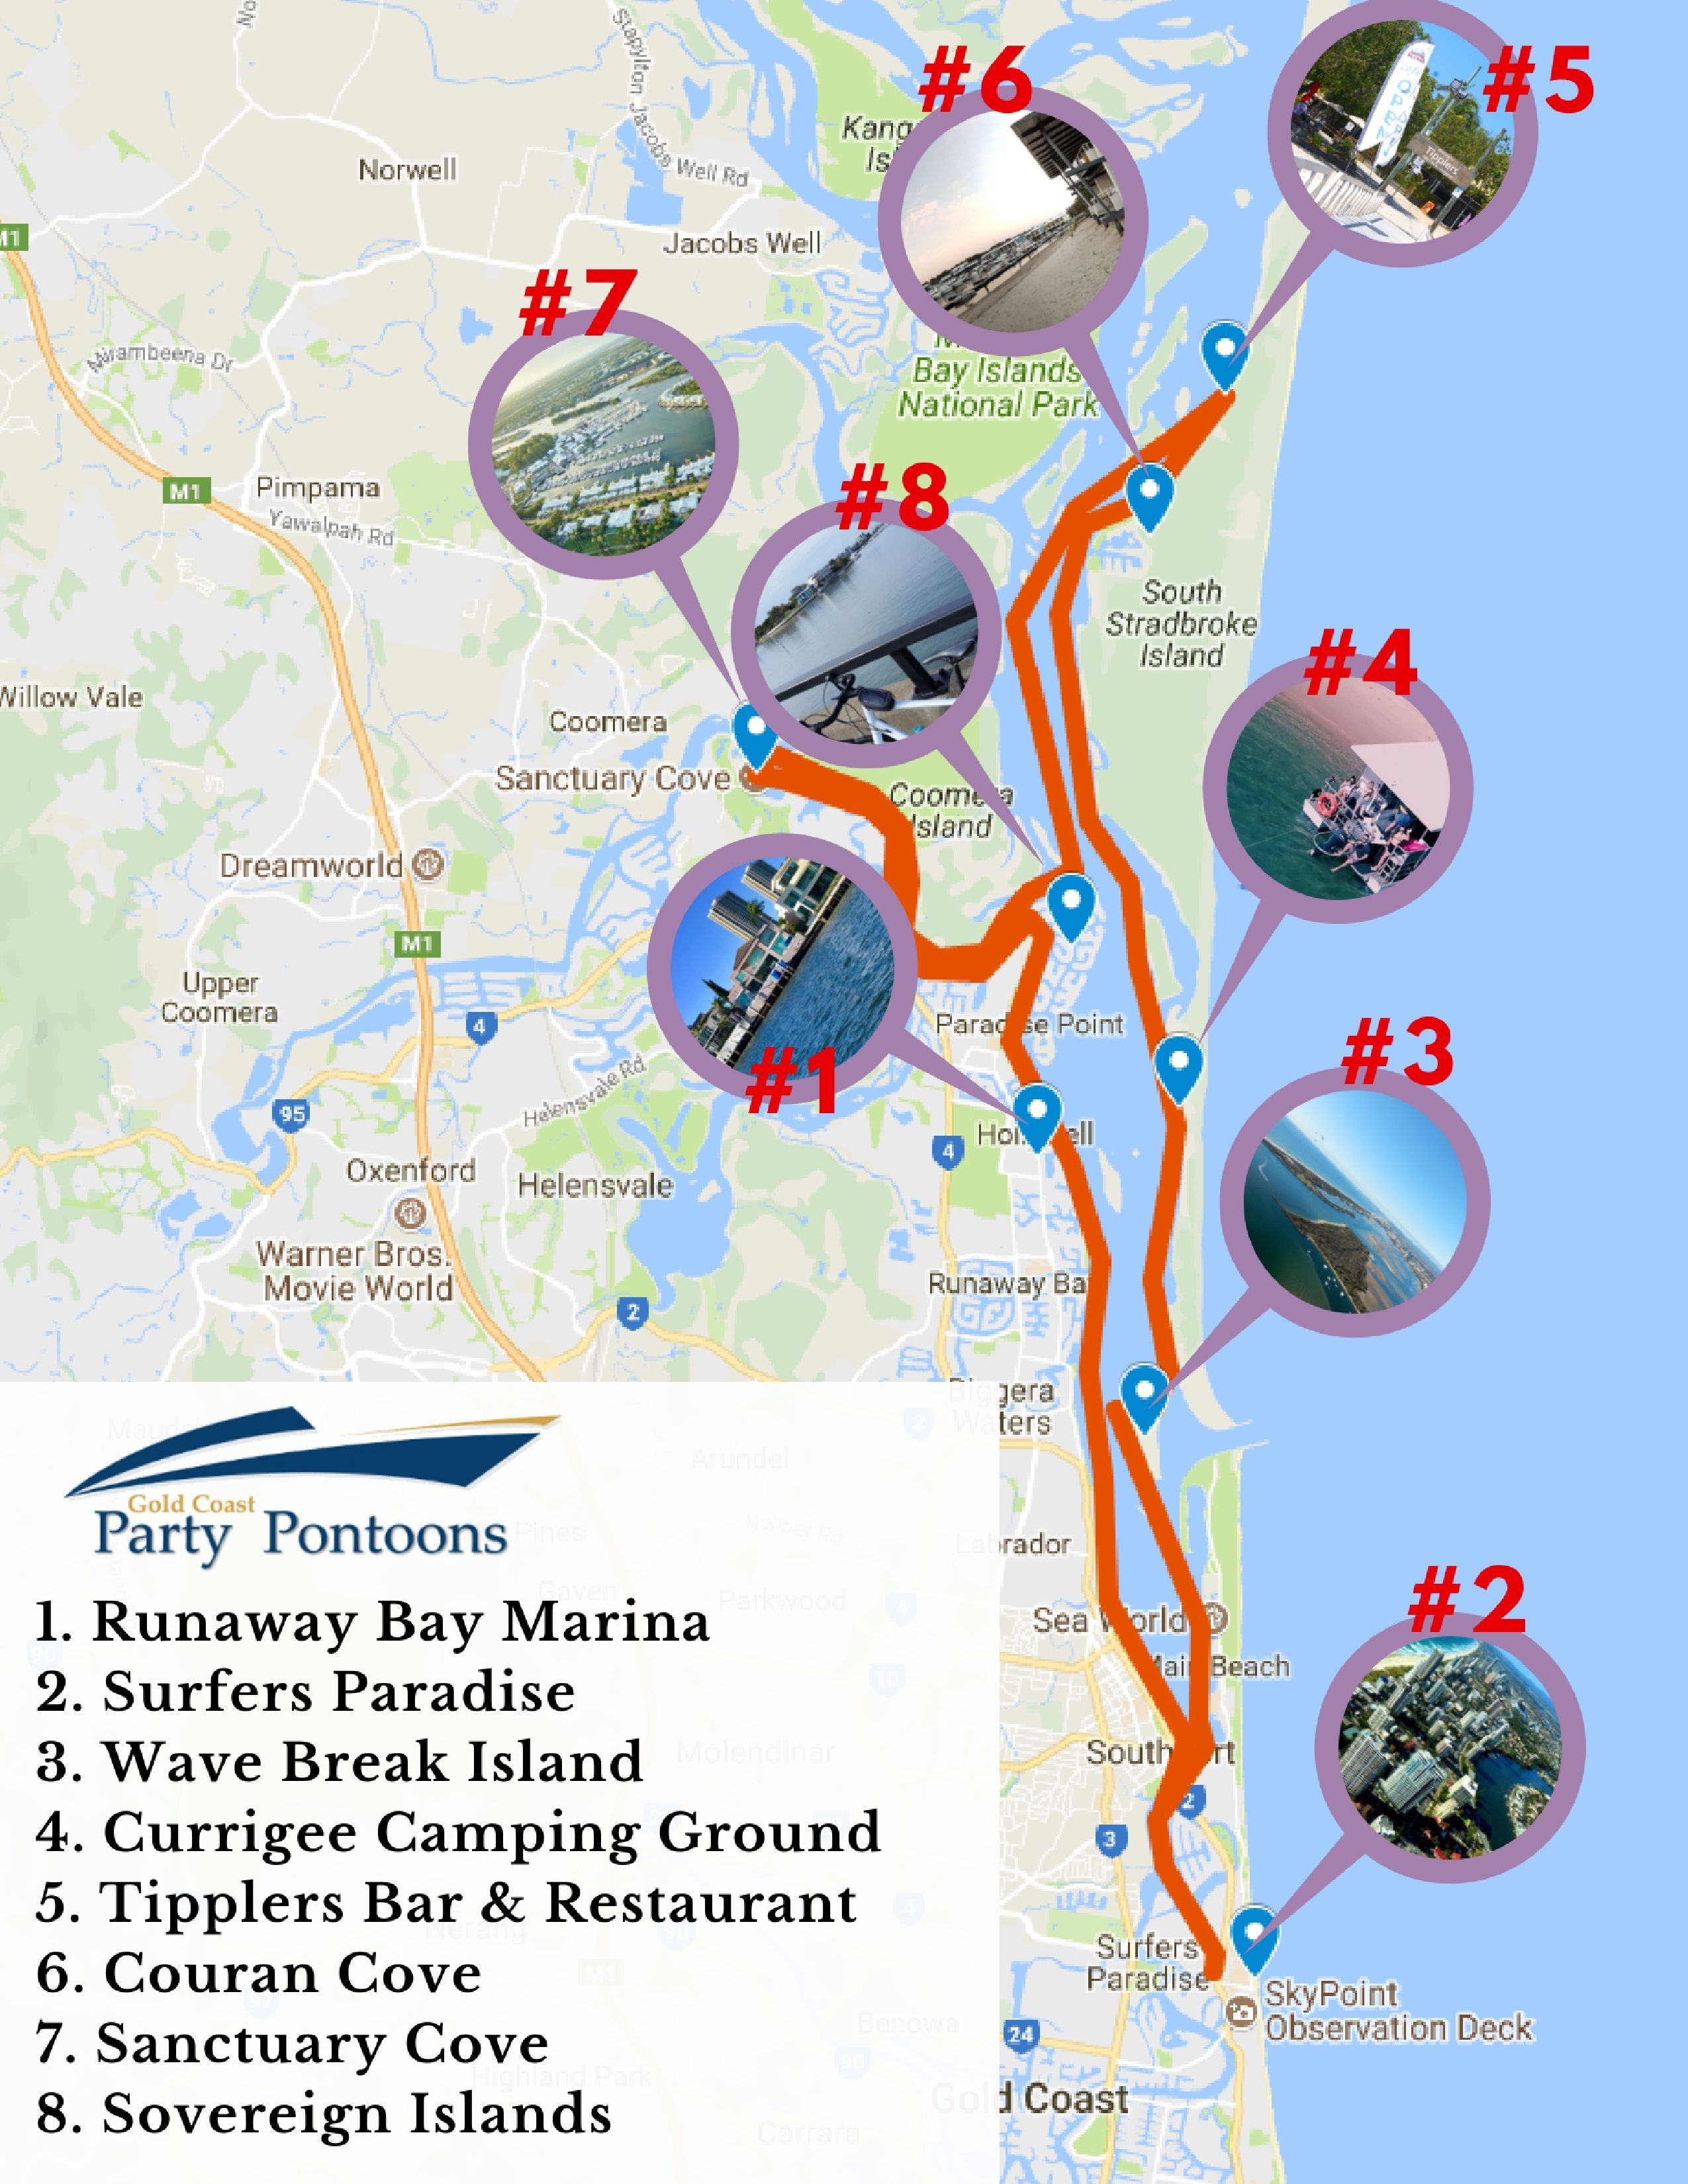 8 Superb Destinations Along The Gold Coast Broadwater To Berth At Whatever You Prefer We Guarantee You An Amazing Time Onboard Pontoon Boat Hire Jacobs Well